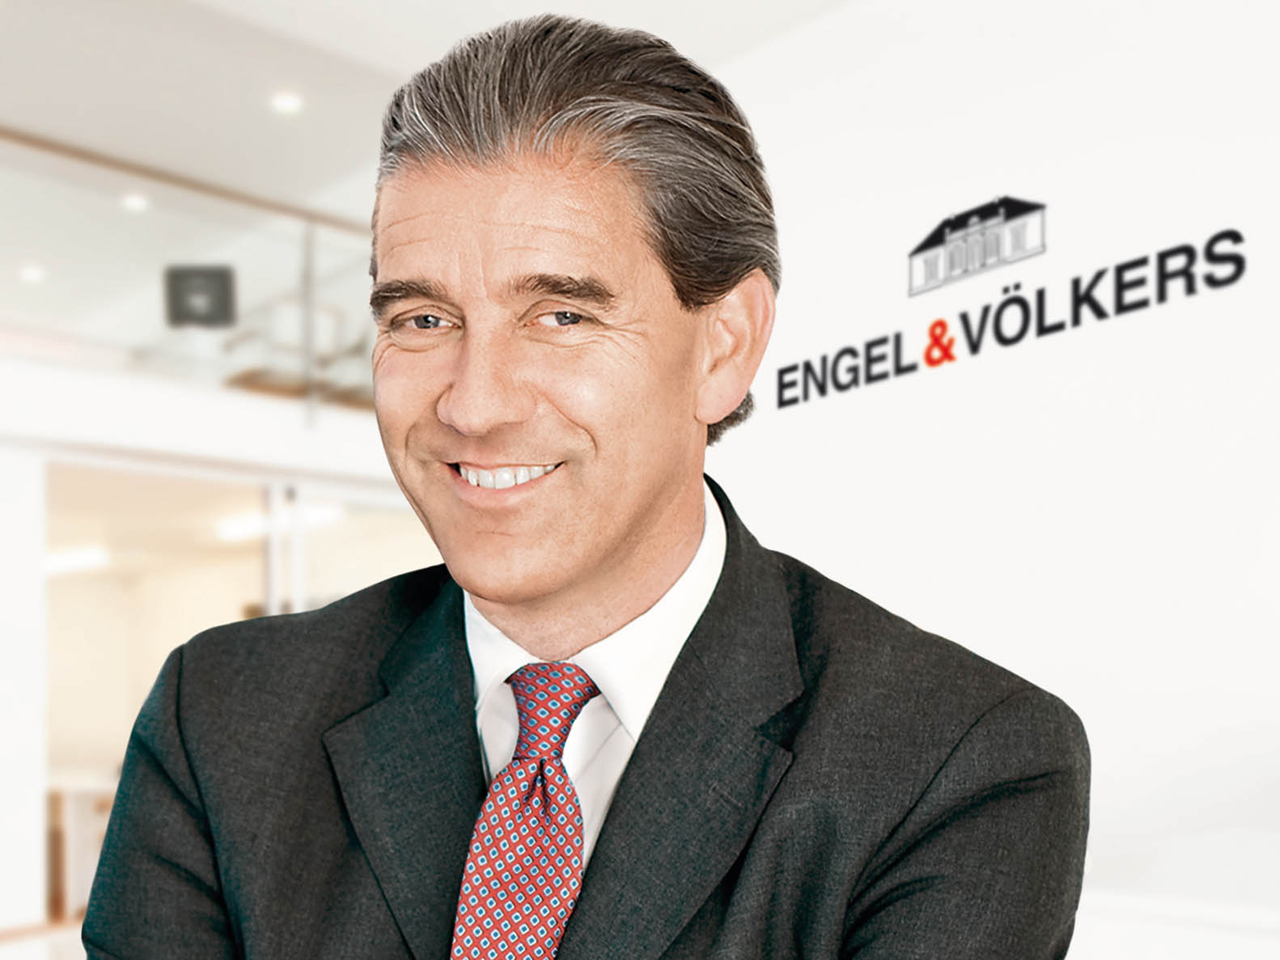 Engel & Völkers reports turnover growth in the first half-year of 2018